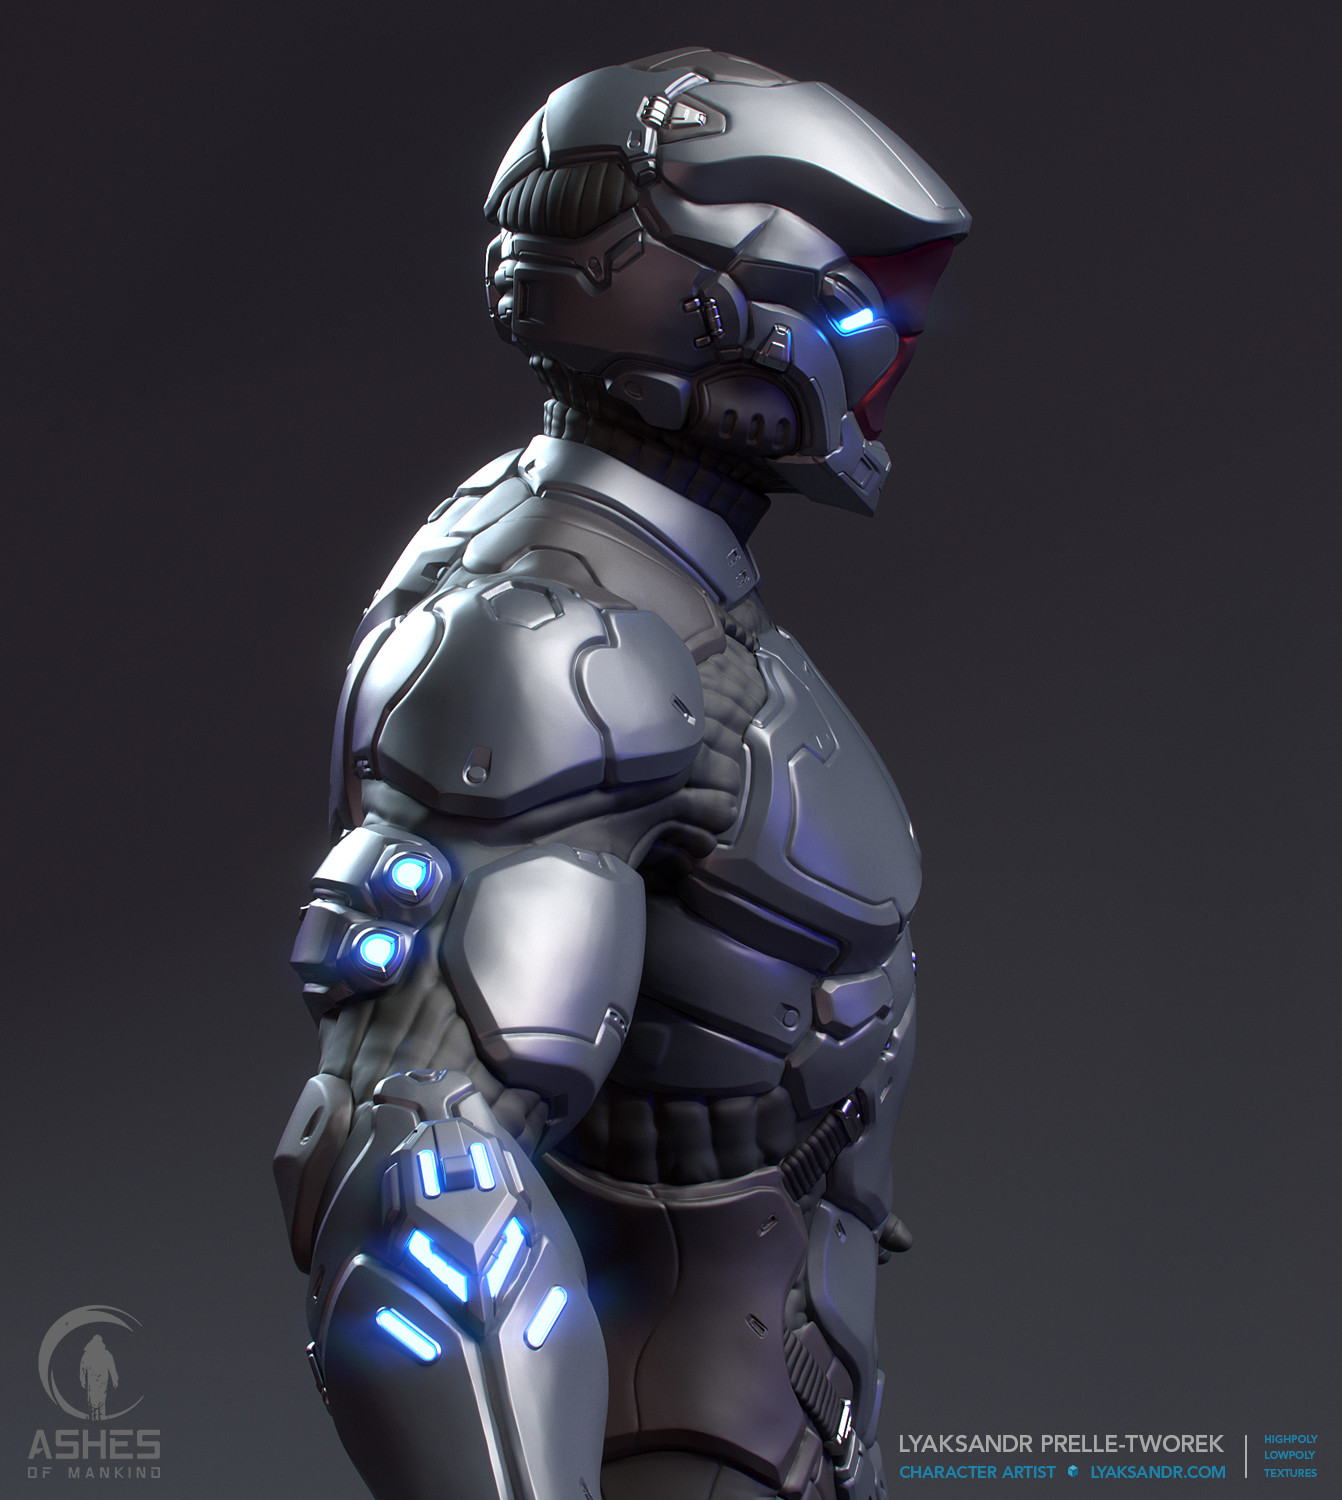 Lyaksandr prelle tworek aom eastern light armor highpoly side